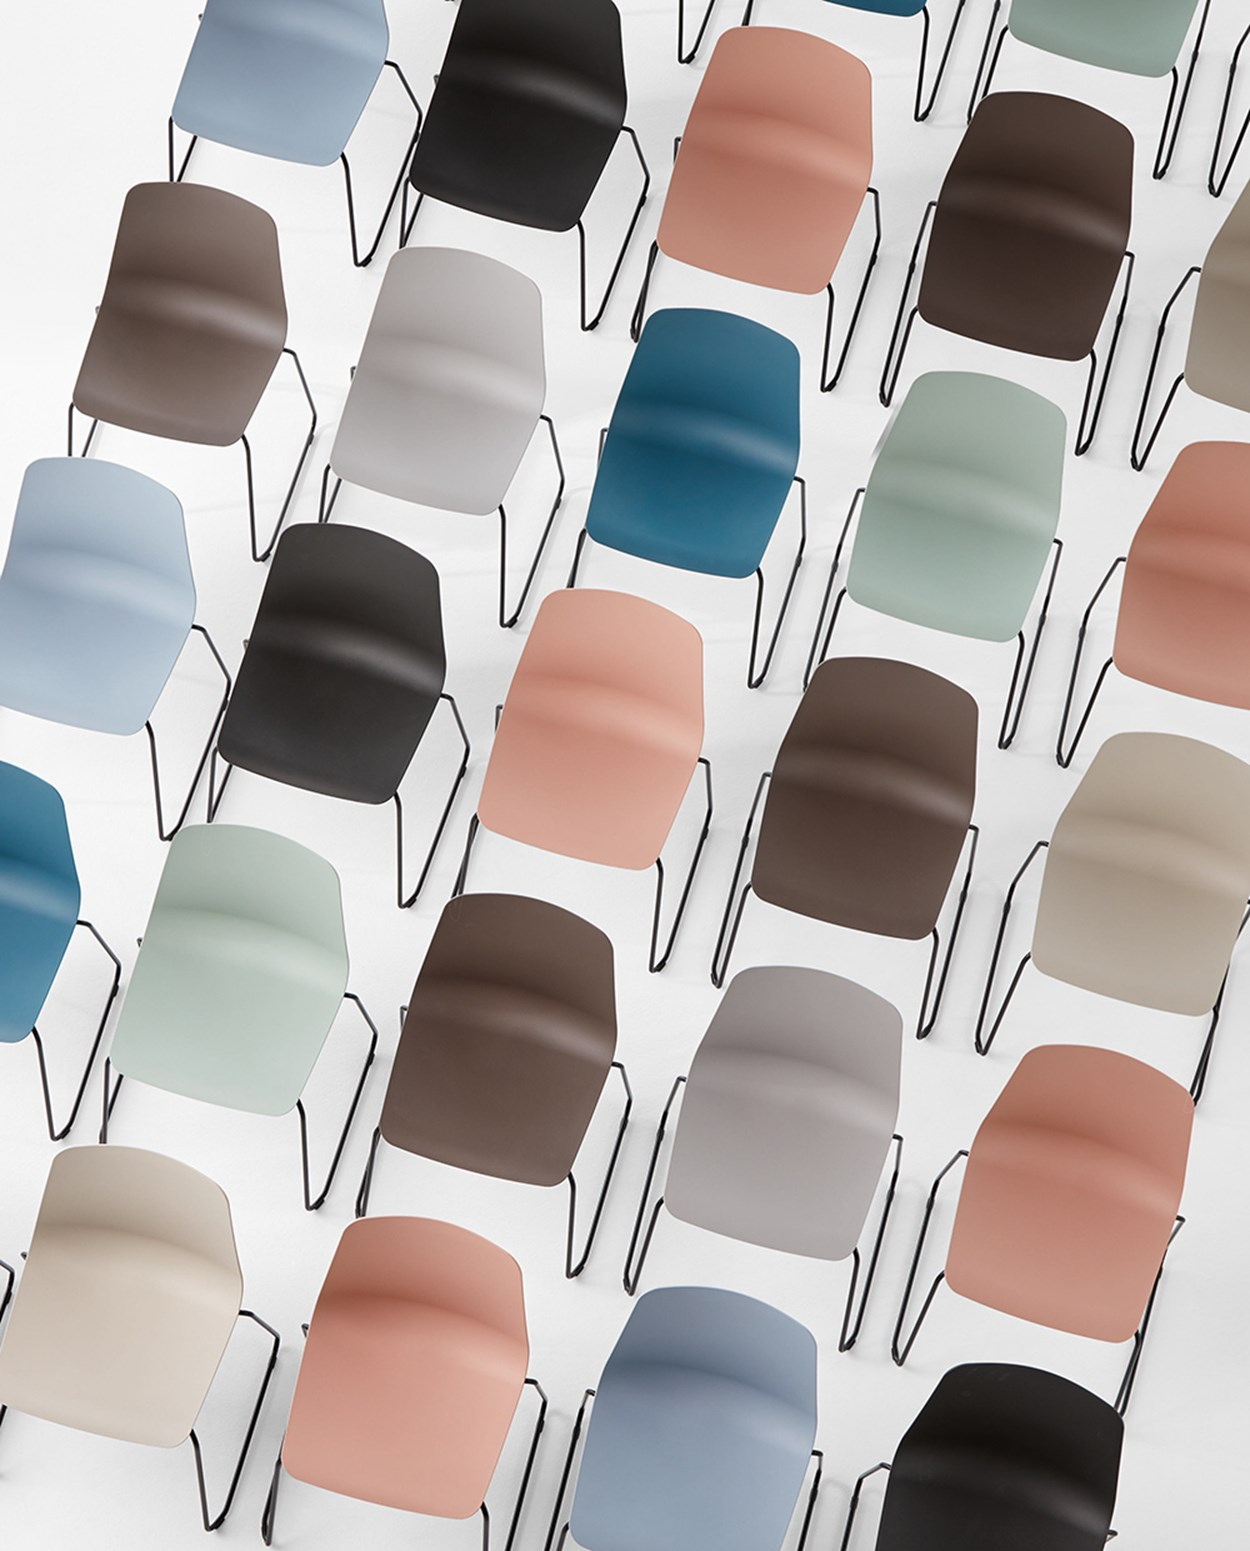 inclass-varya-chairs-different-colours.jpg